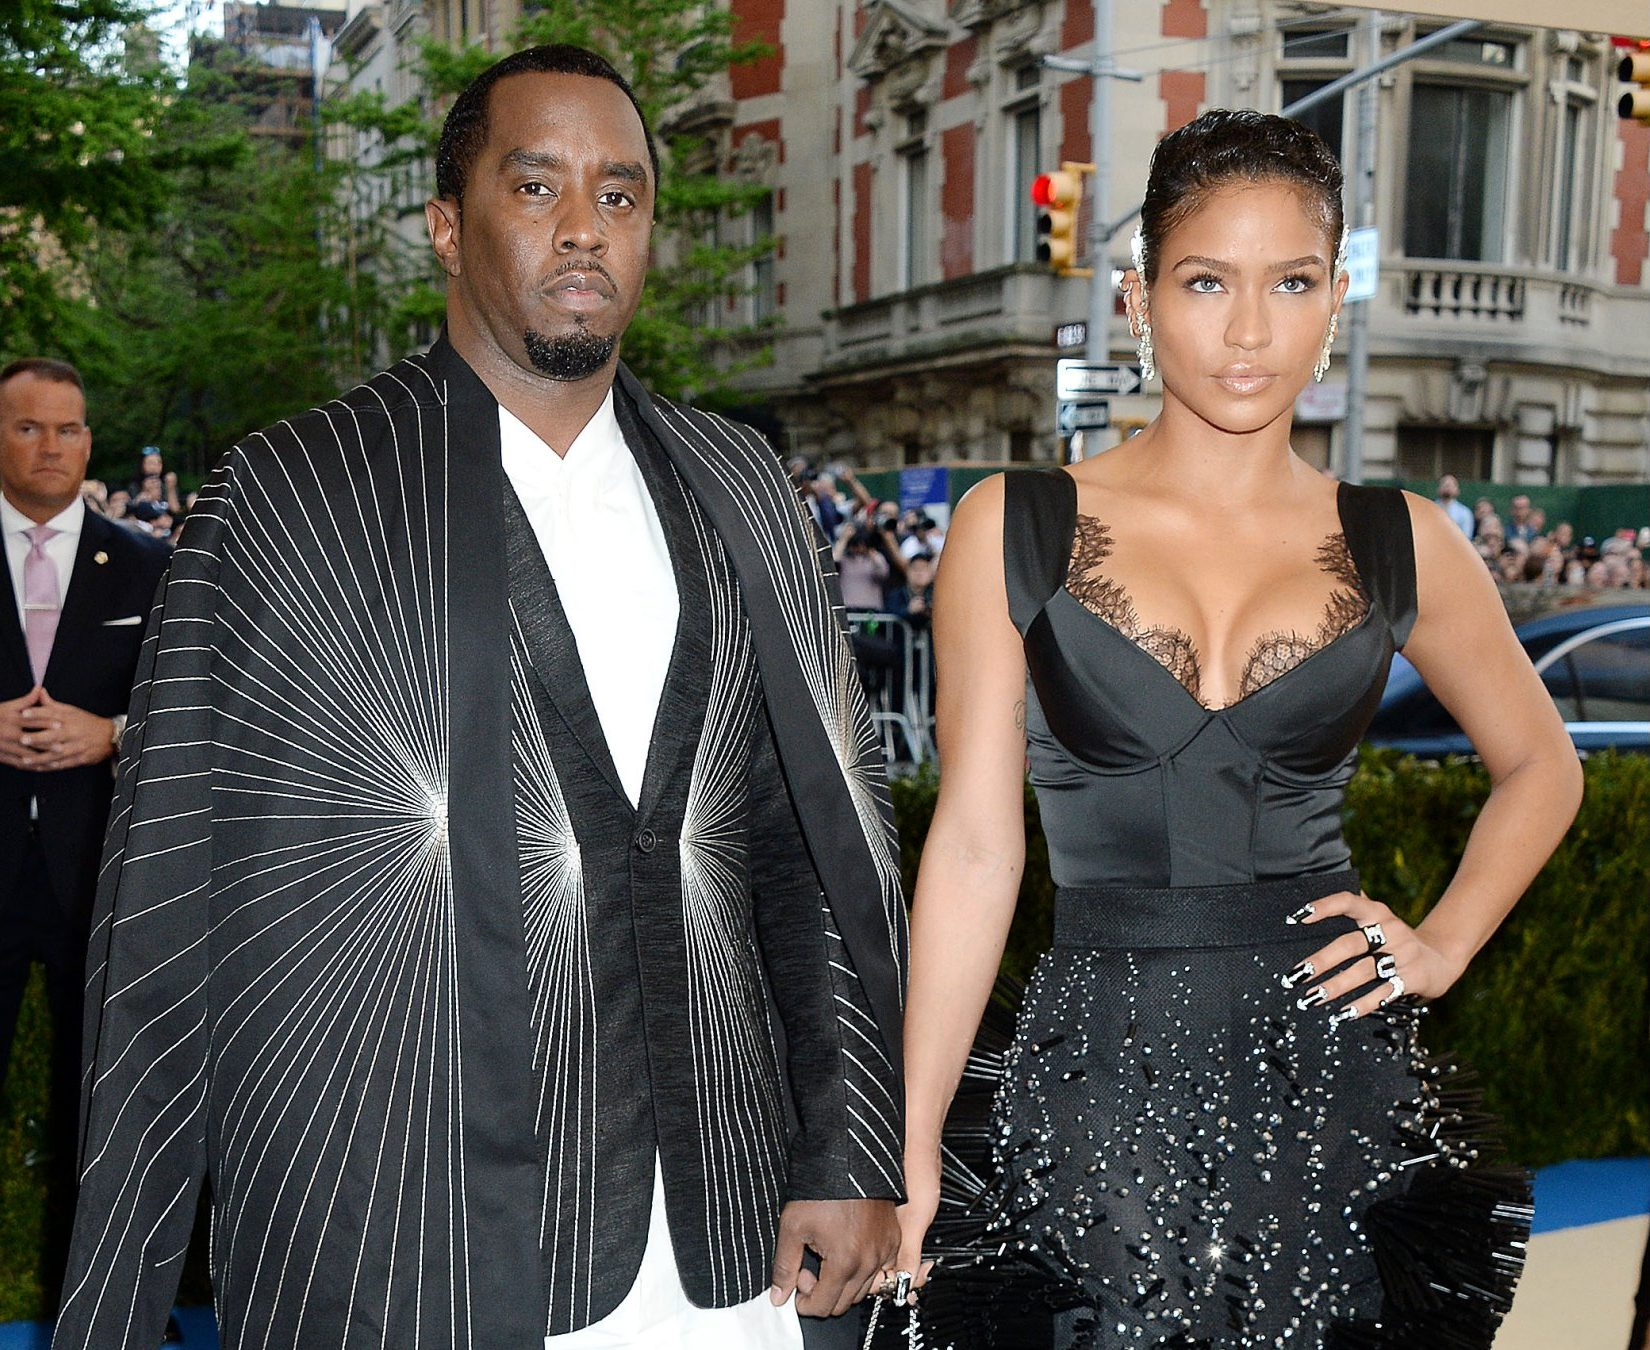 Cassie is stepping out of ex Diddy's shadow with new tell-all album following split